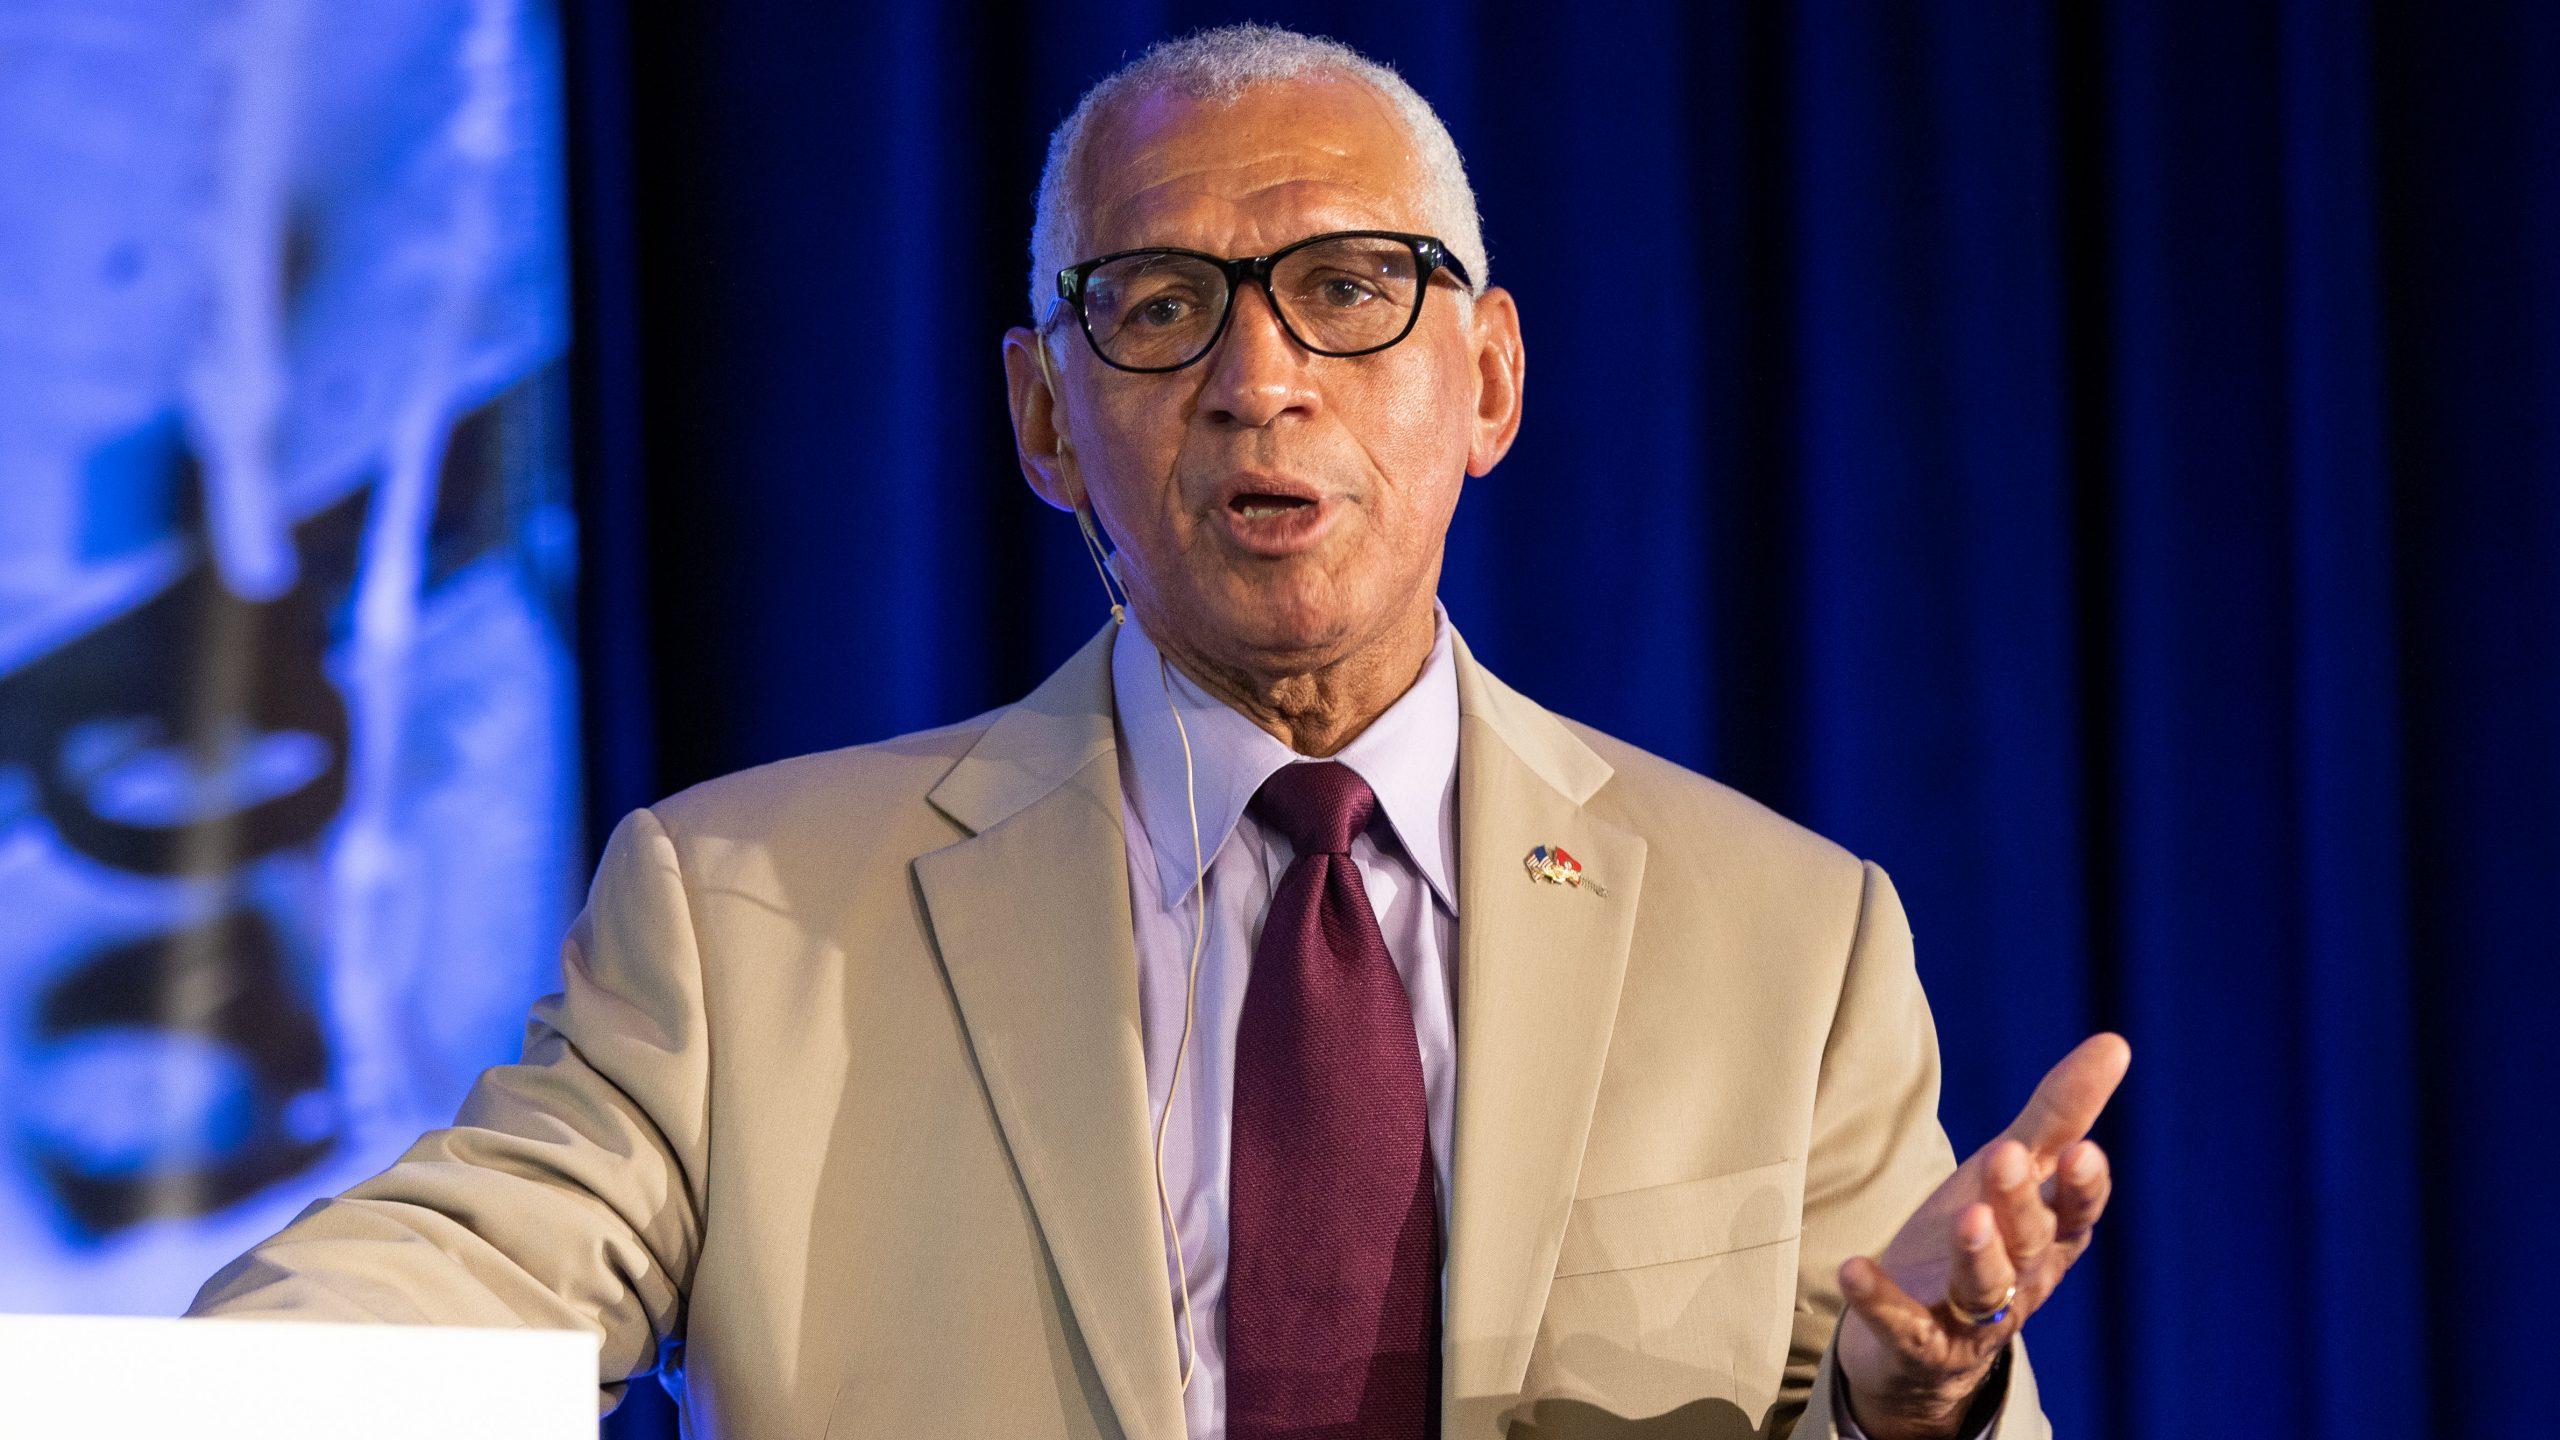 Charlie Bolden talks about the importance of Next Generation leadership at the 2019 Glenn Symposium. Credit: Patrick Rouin/AAS